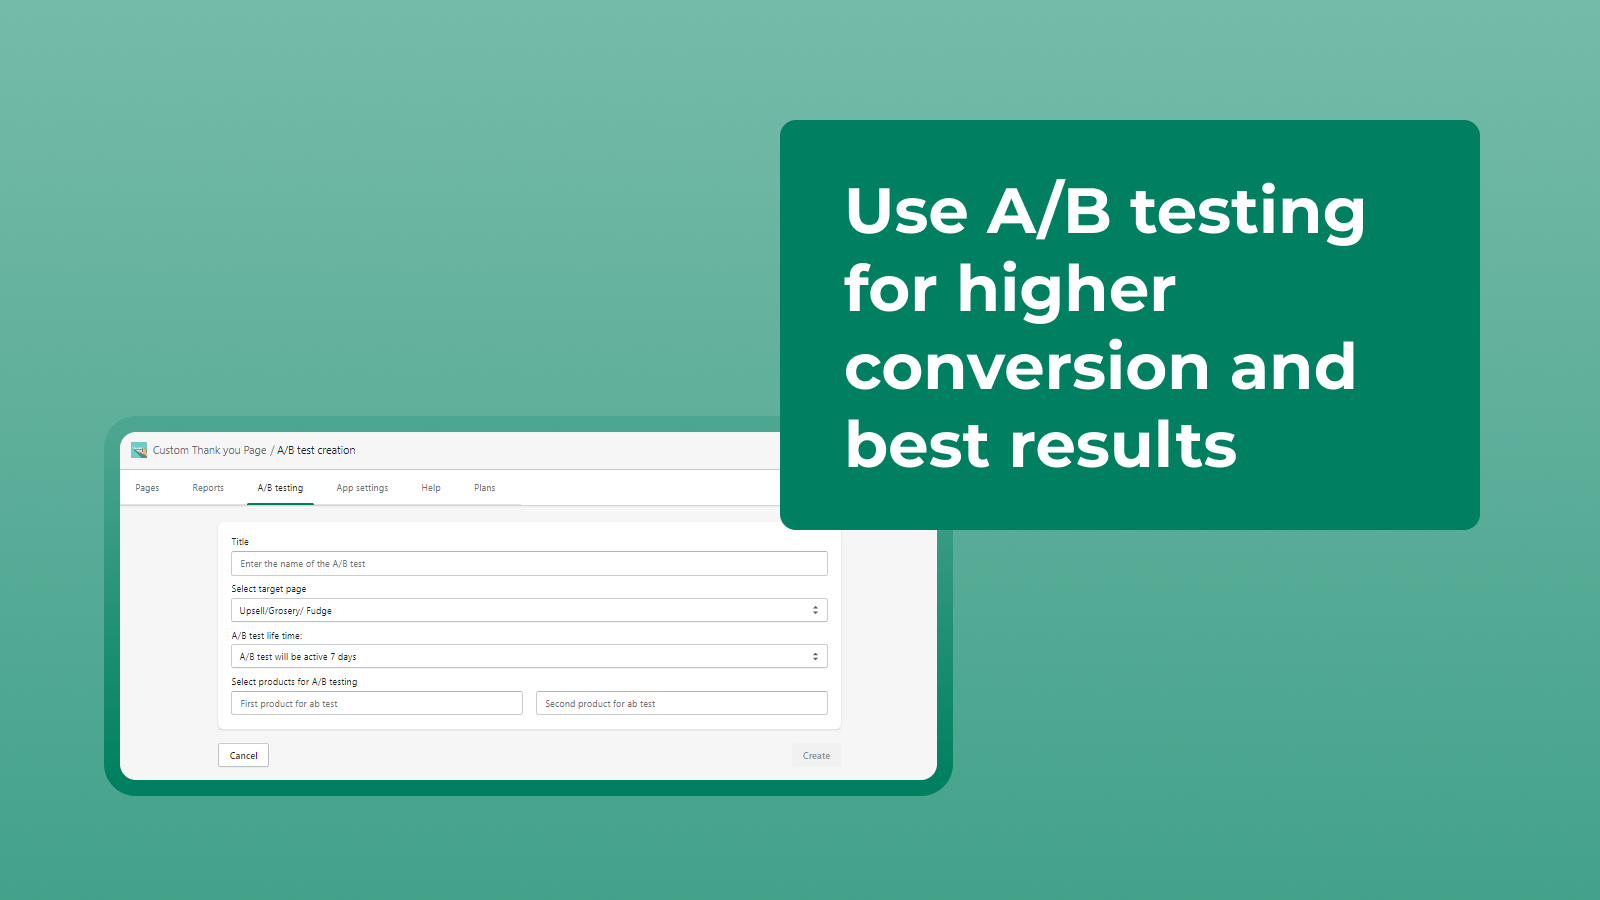 Use A/B testing for higter conversion and best results